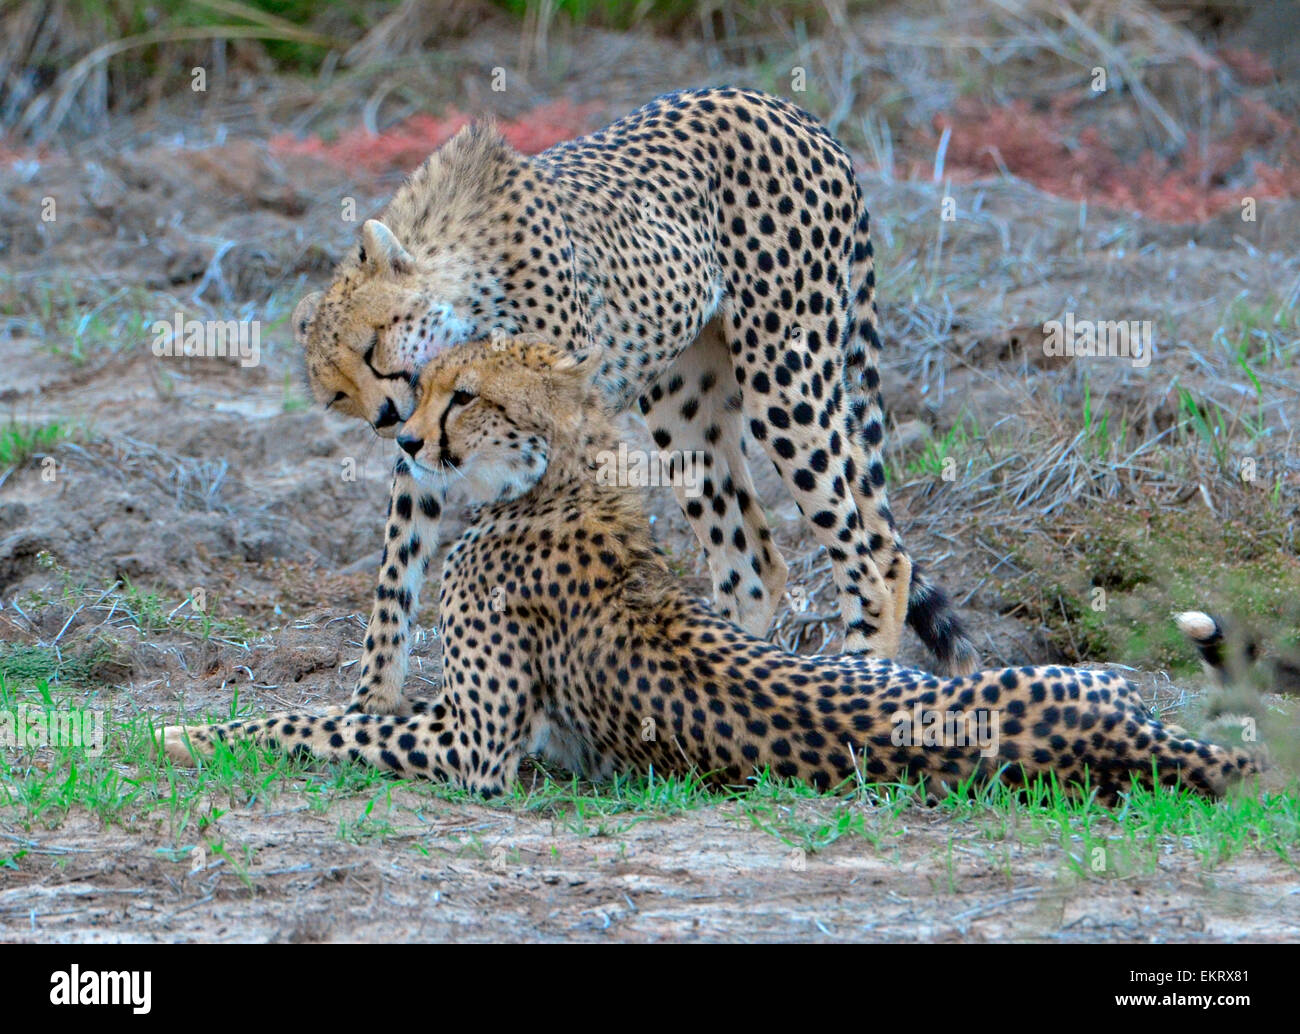 Two female cheetahs, Acinonyx jubatus,  licking each other's muzzels, Kruger Park, South Africa - Stock Image